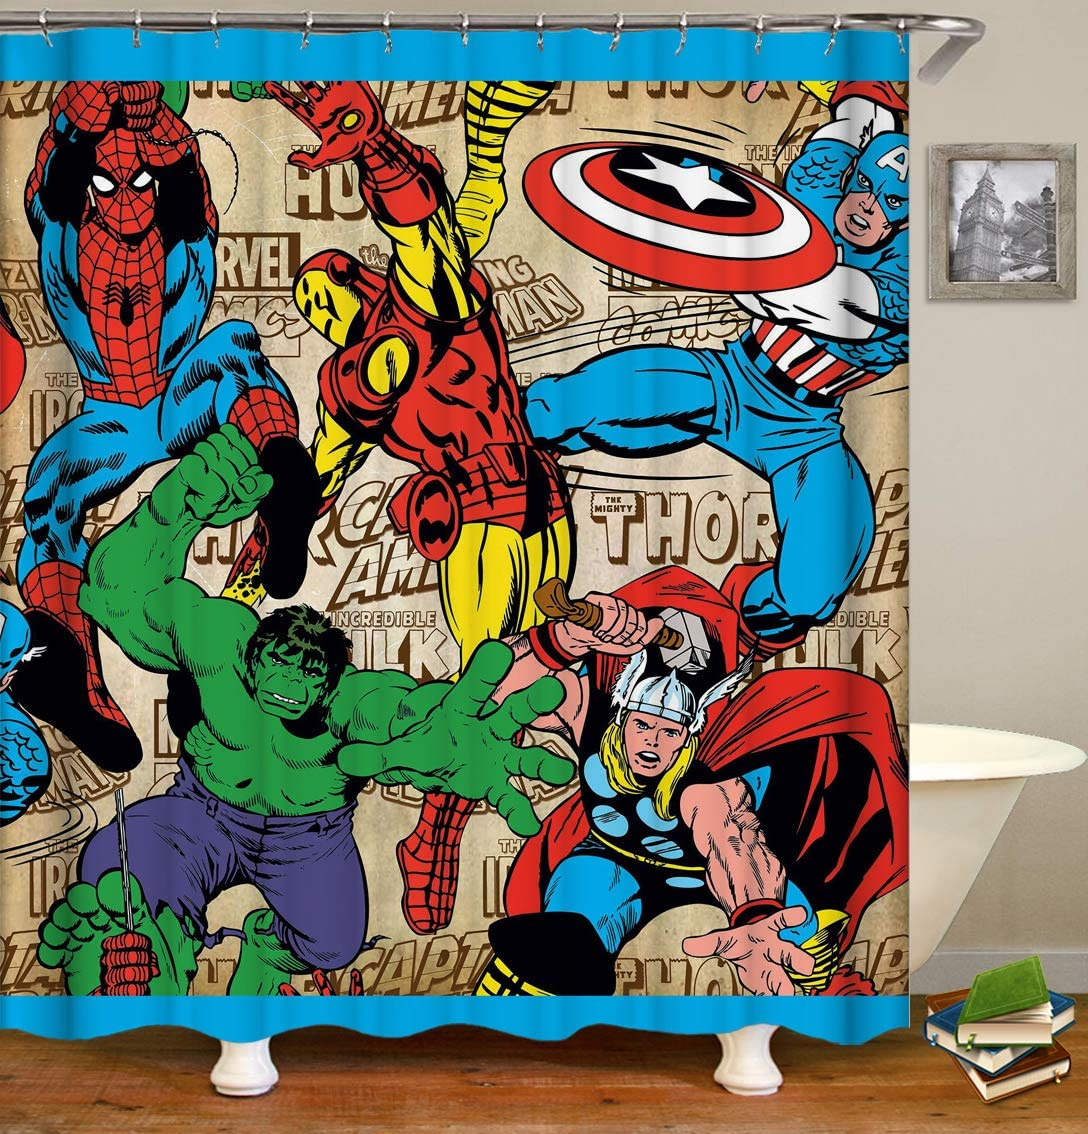 Doublucky Decorative Shower Curtain Spider Man Hulk Iron Man and Thor Captain America on Cartoon Paper Ornamental Bath Curtain Waterproof and Durable Polyester Fabric Curtain